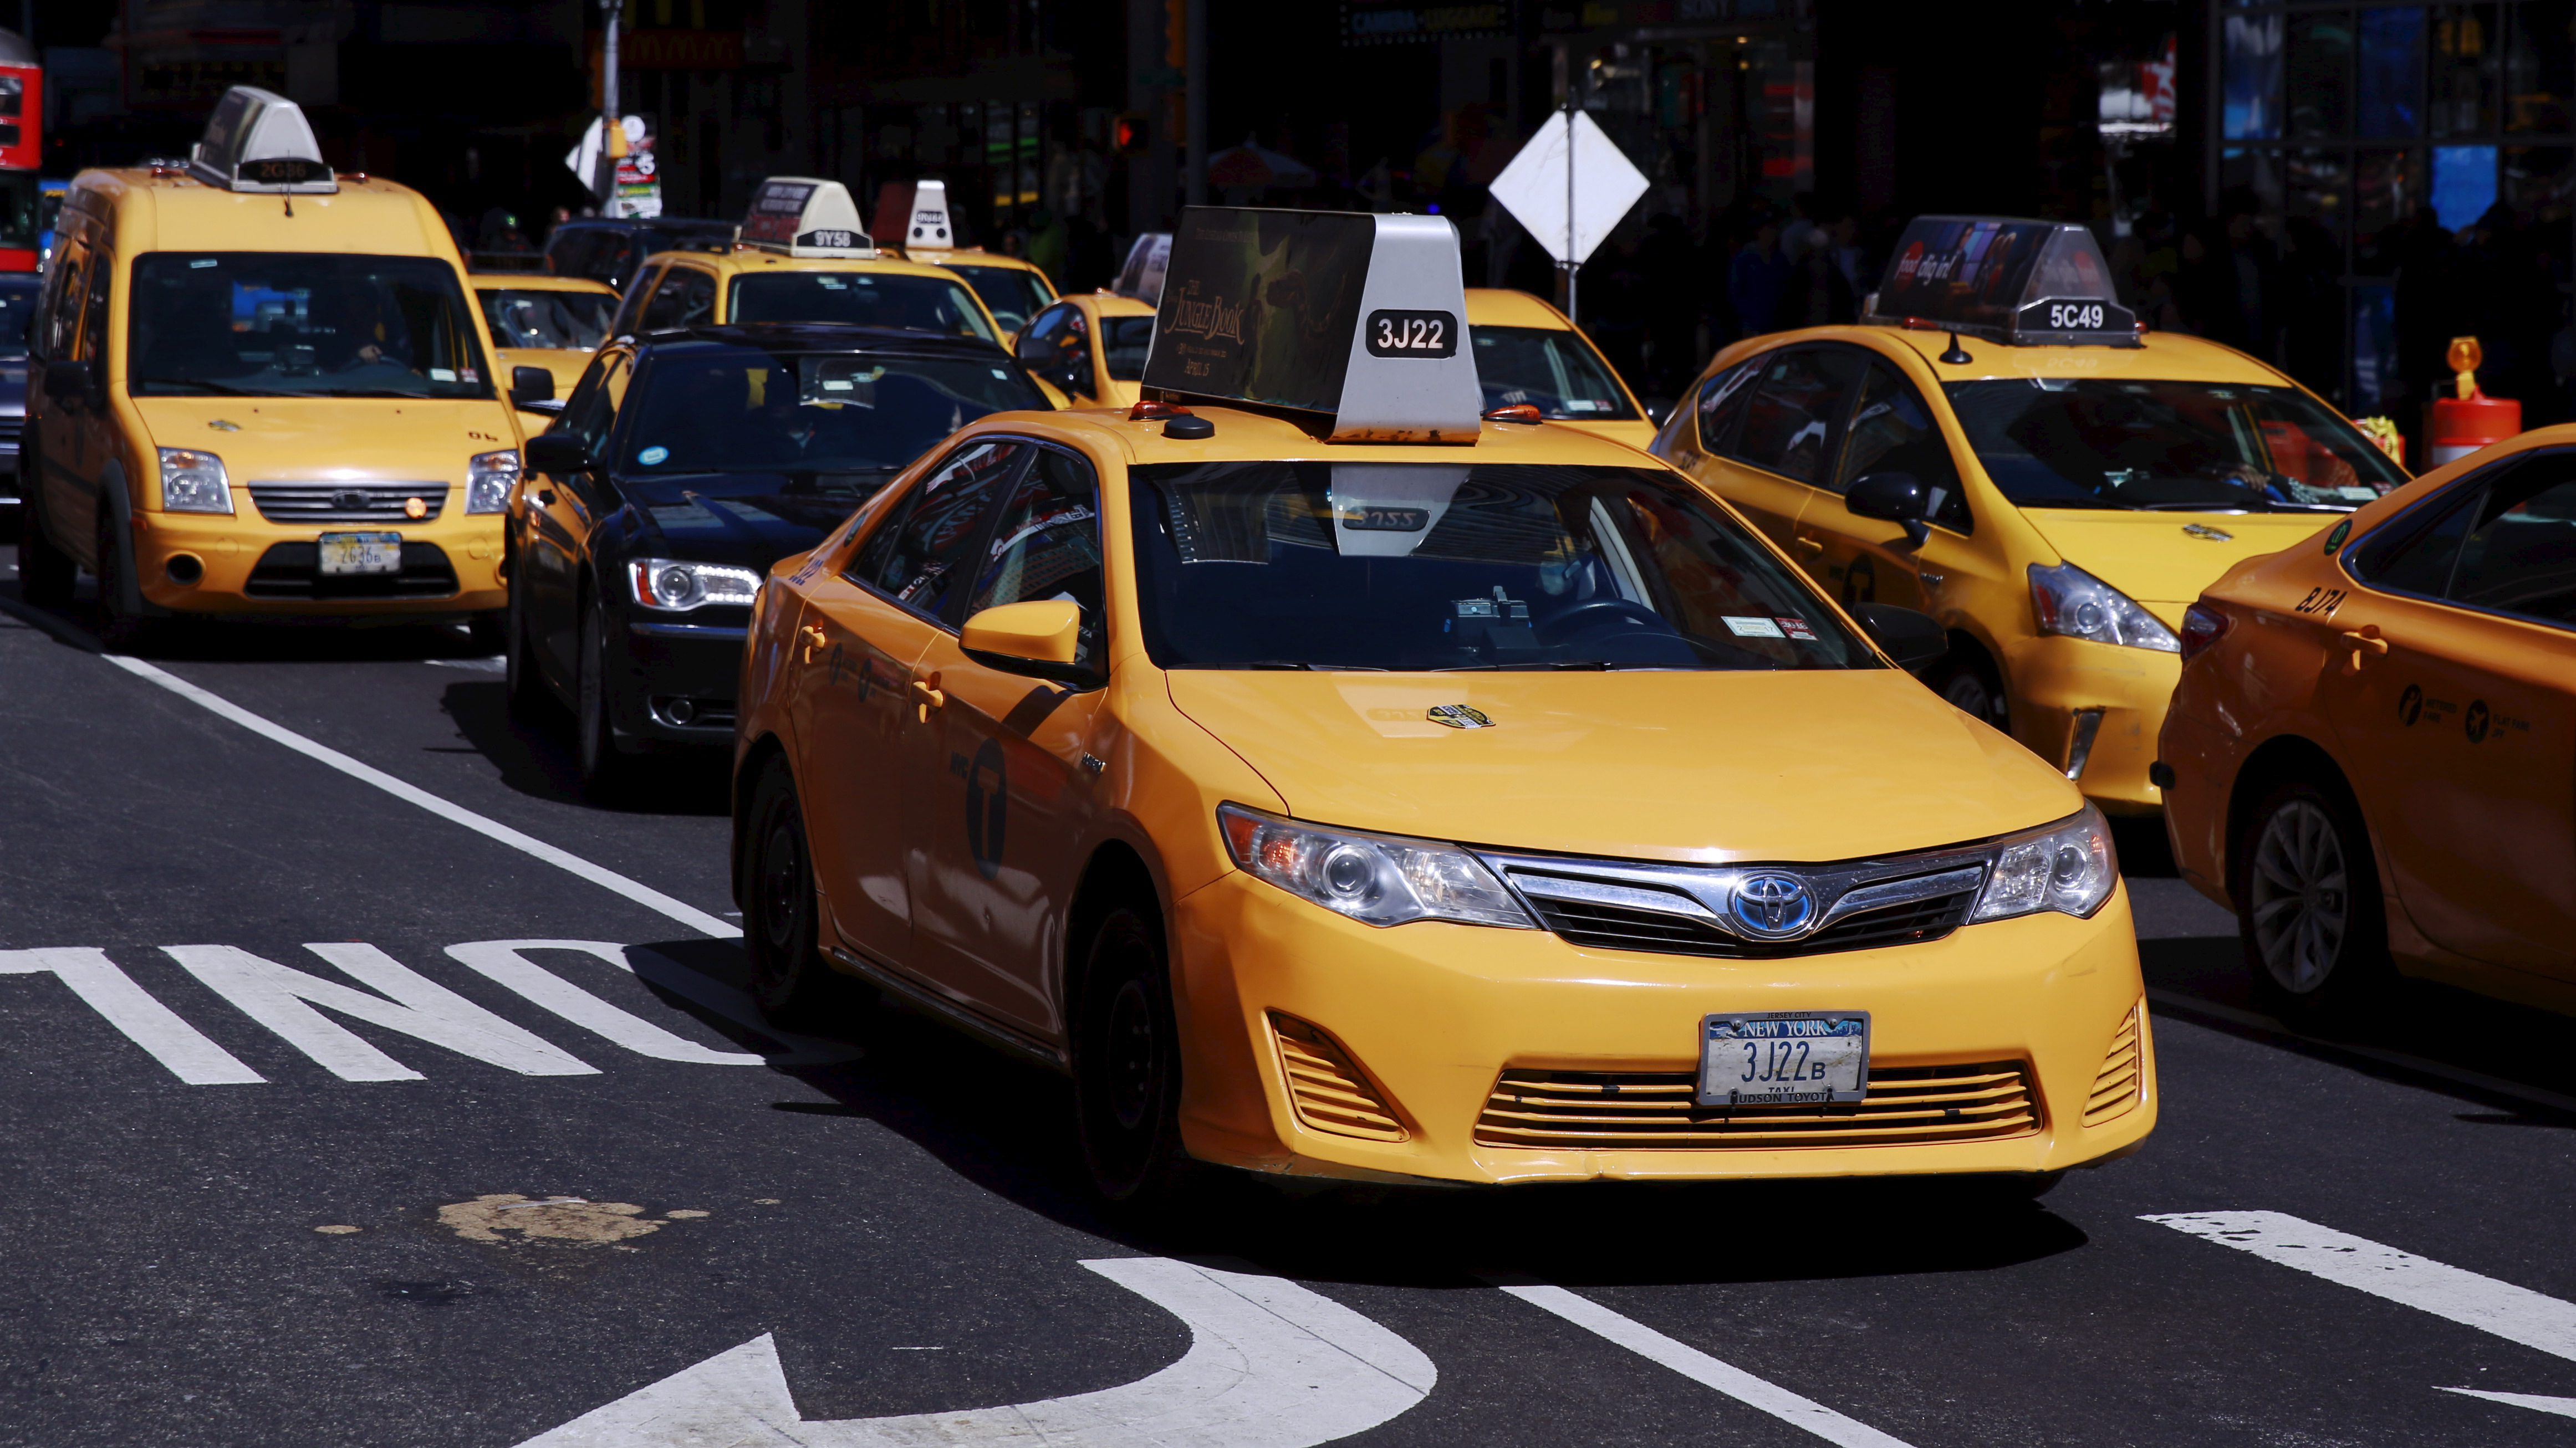 Image result for Rides than taxis did in New York in 2017